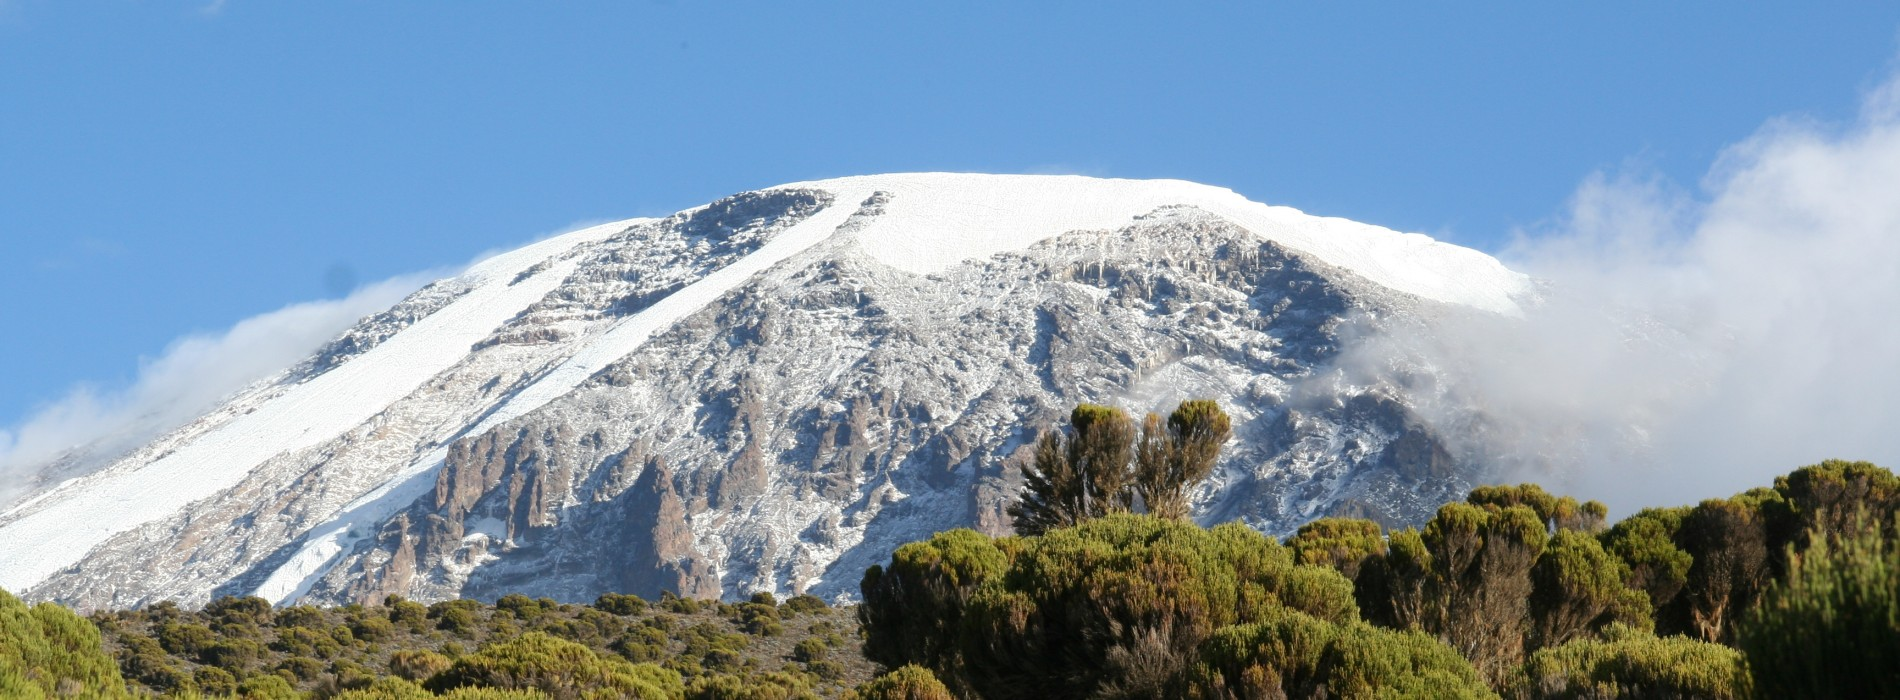 Great views of Mount Kilimanjaro